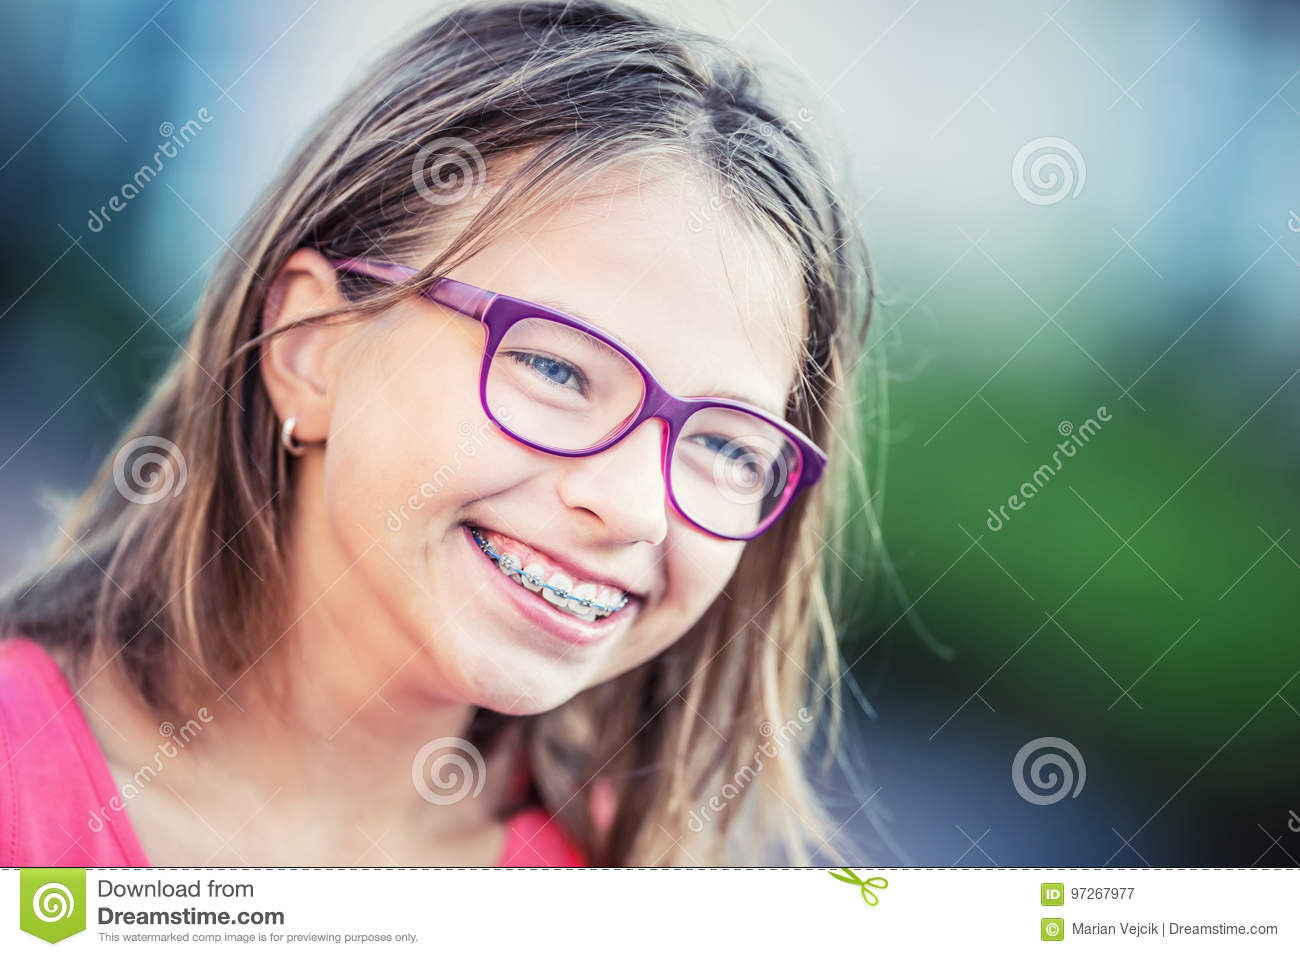 Join. agree Cute teens with braces glasses excited too